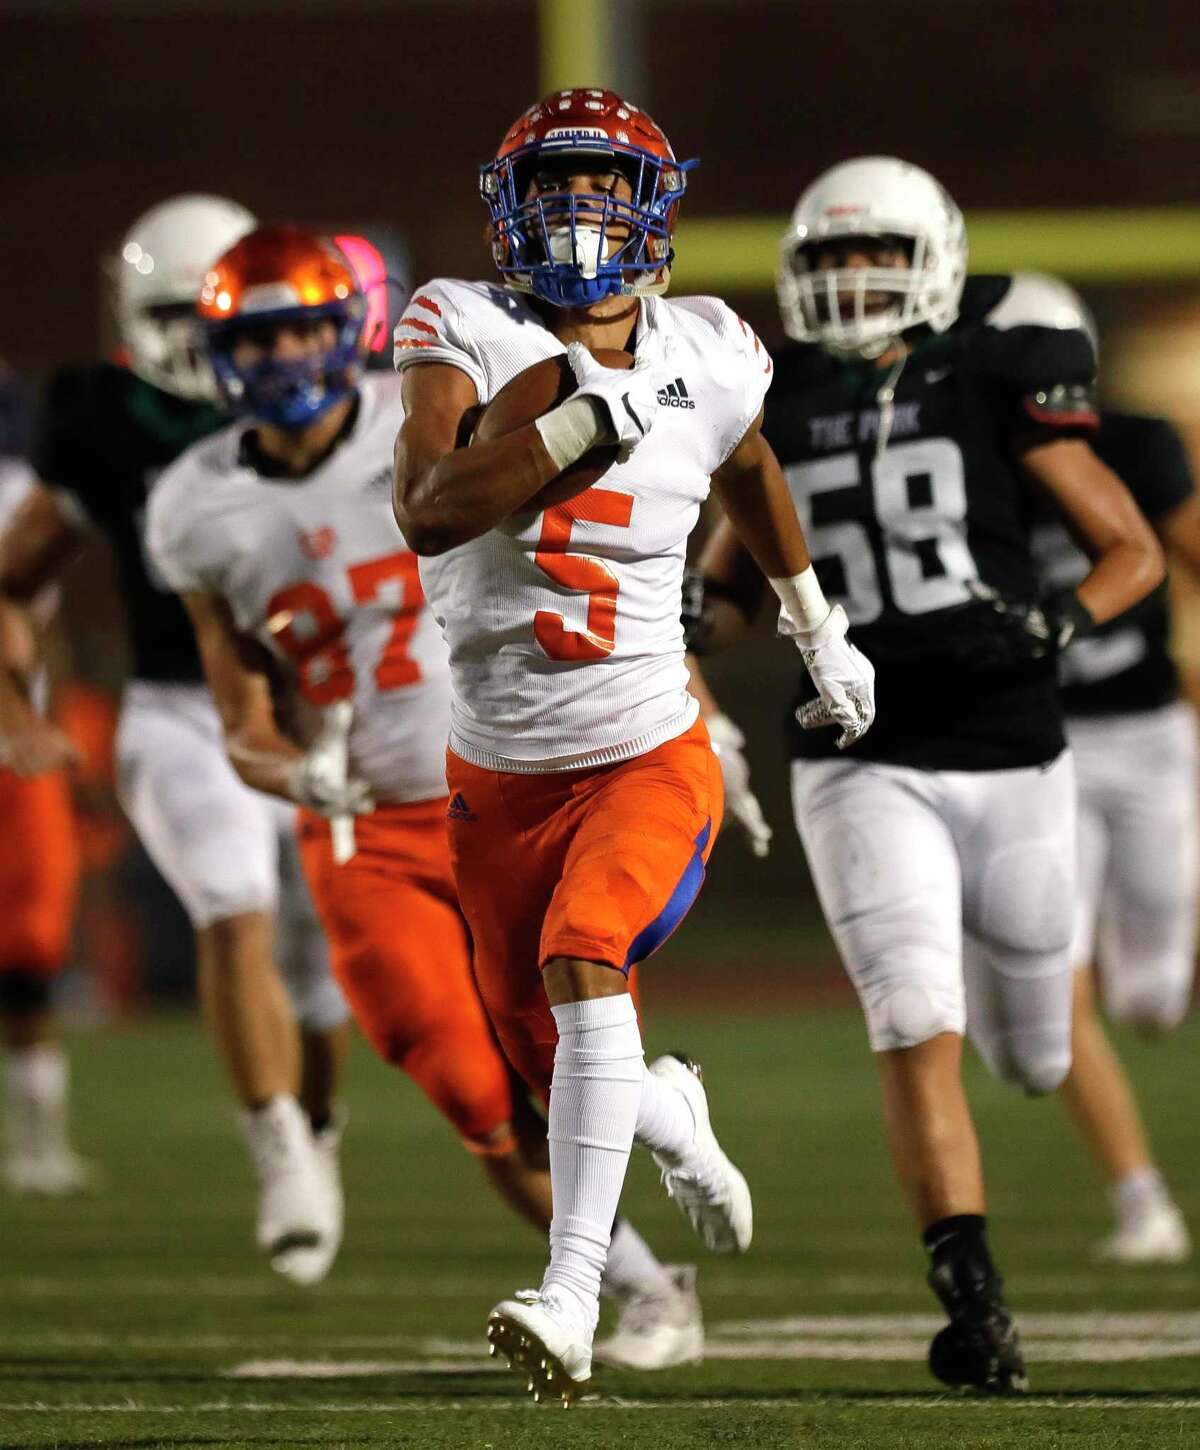 Grand Oaks wide receiver Quanell Farrakhan, Jr. (5) runs for a 54-yard touchdown during the second quarter of a non-district high school football game at Turner Stadium, Thursday, Sept. 9, 2021, in Humble.